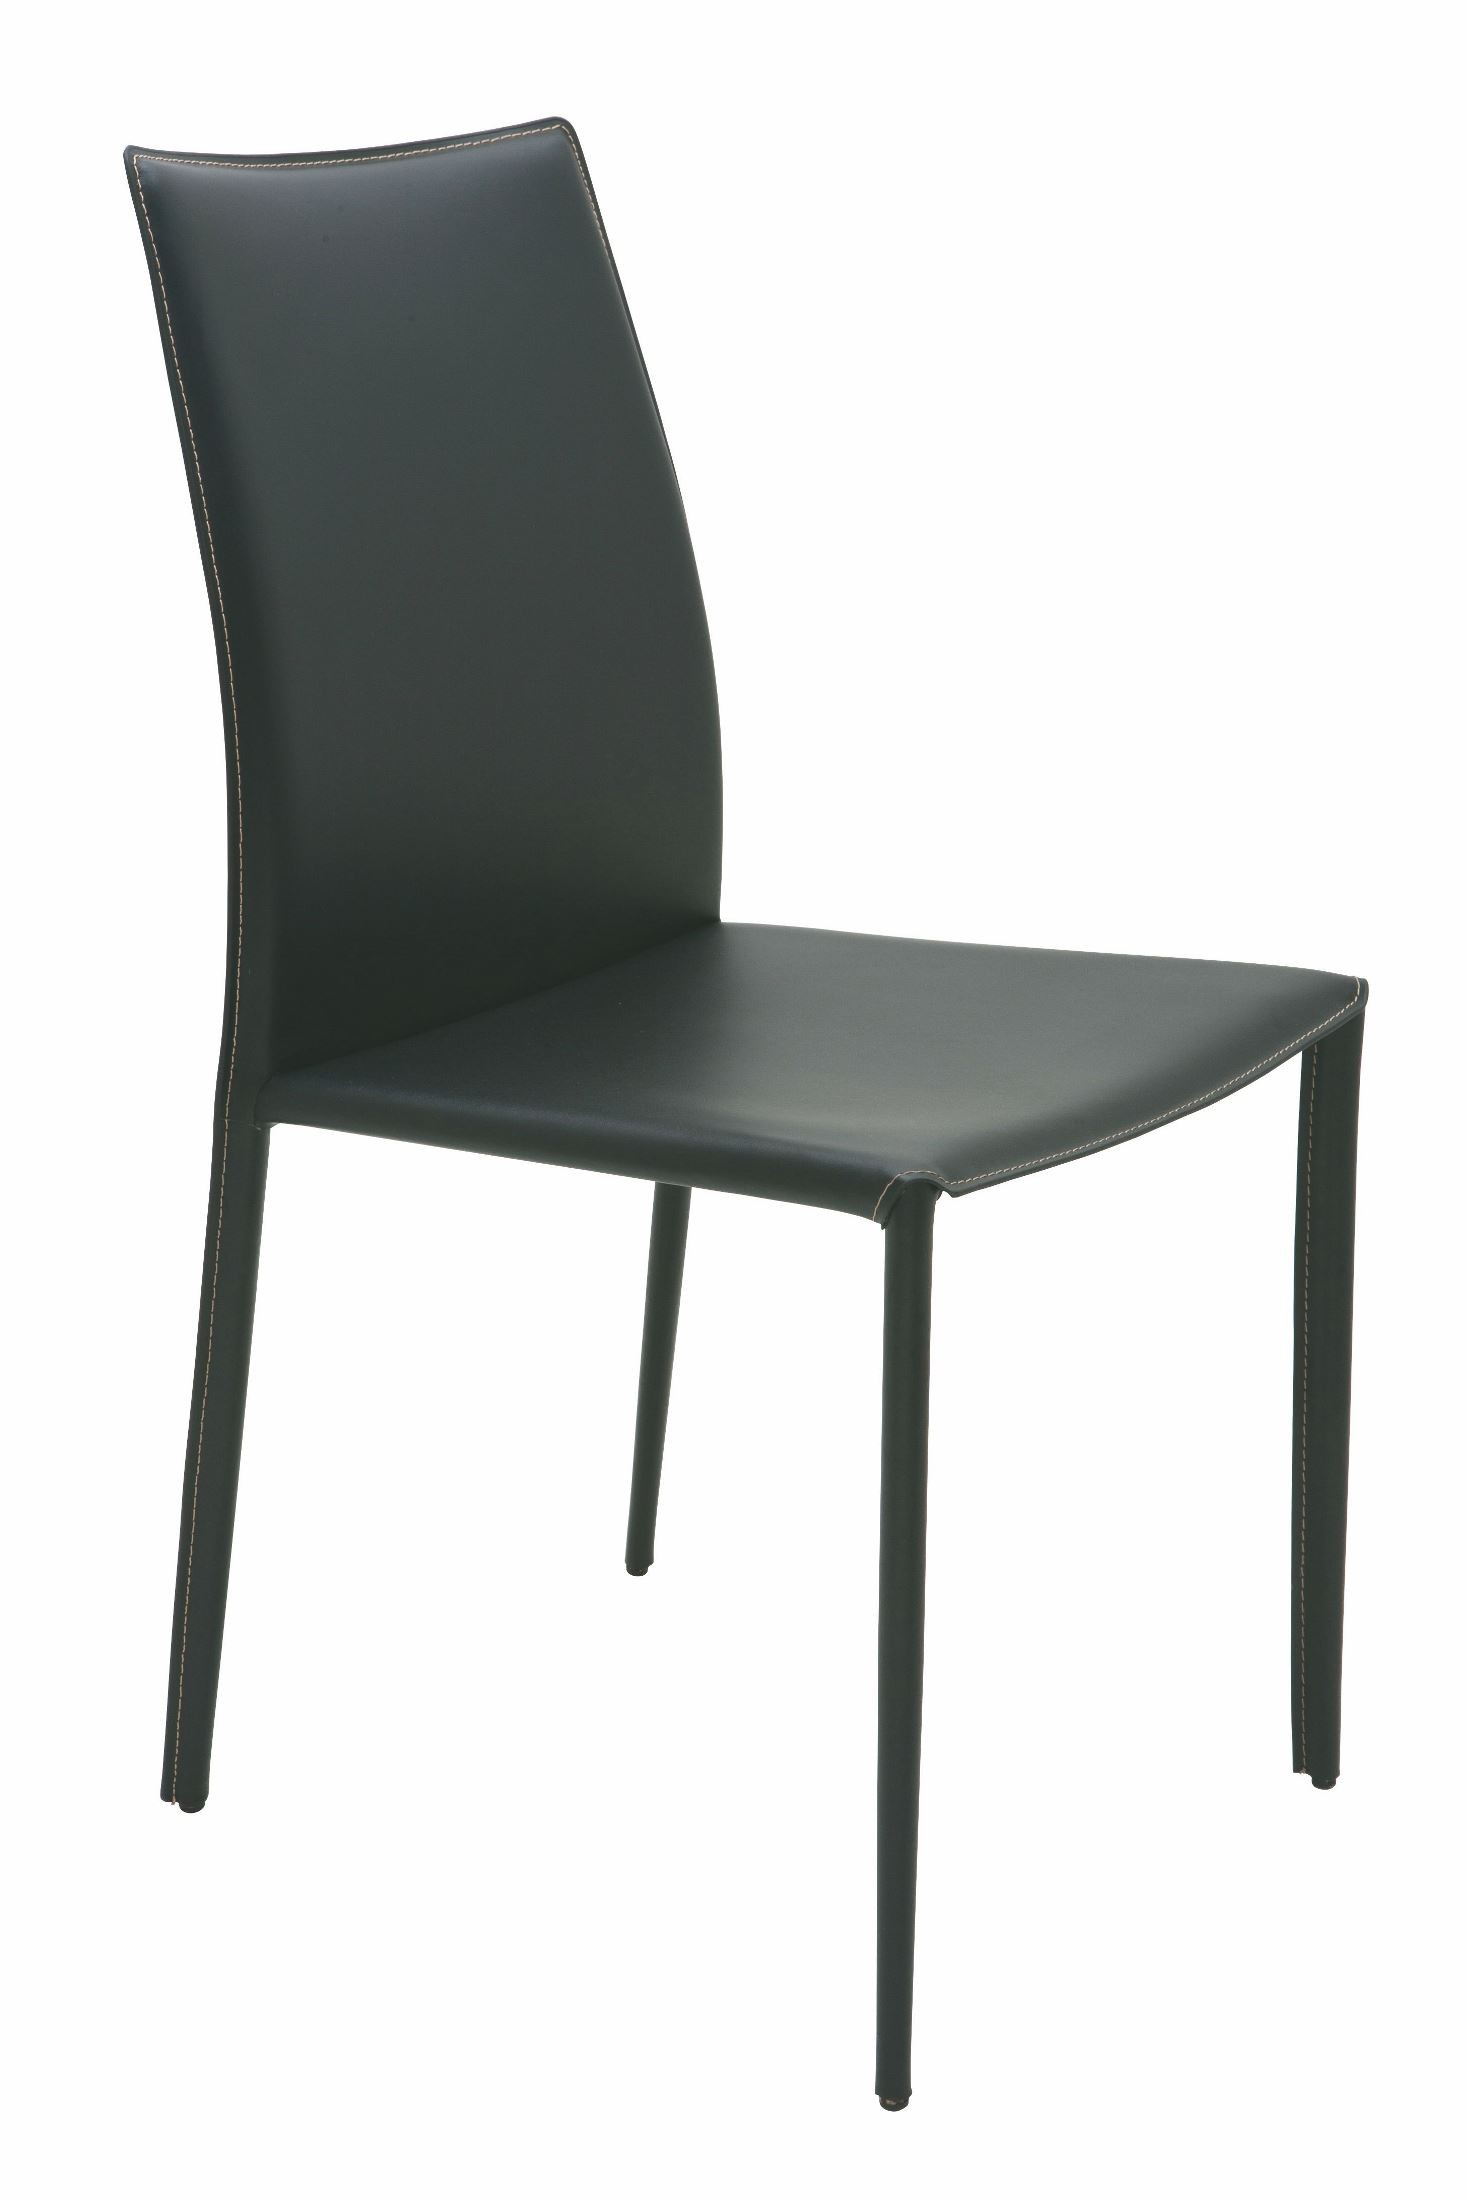 Black Leather Dining Chairs Sienna Black Leather Dining Chair Hgga283 Nuevo